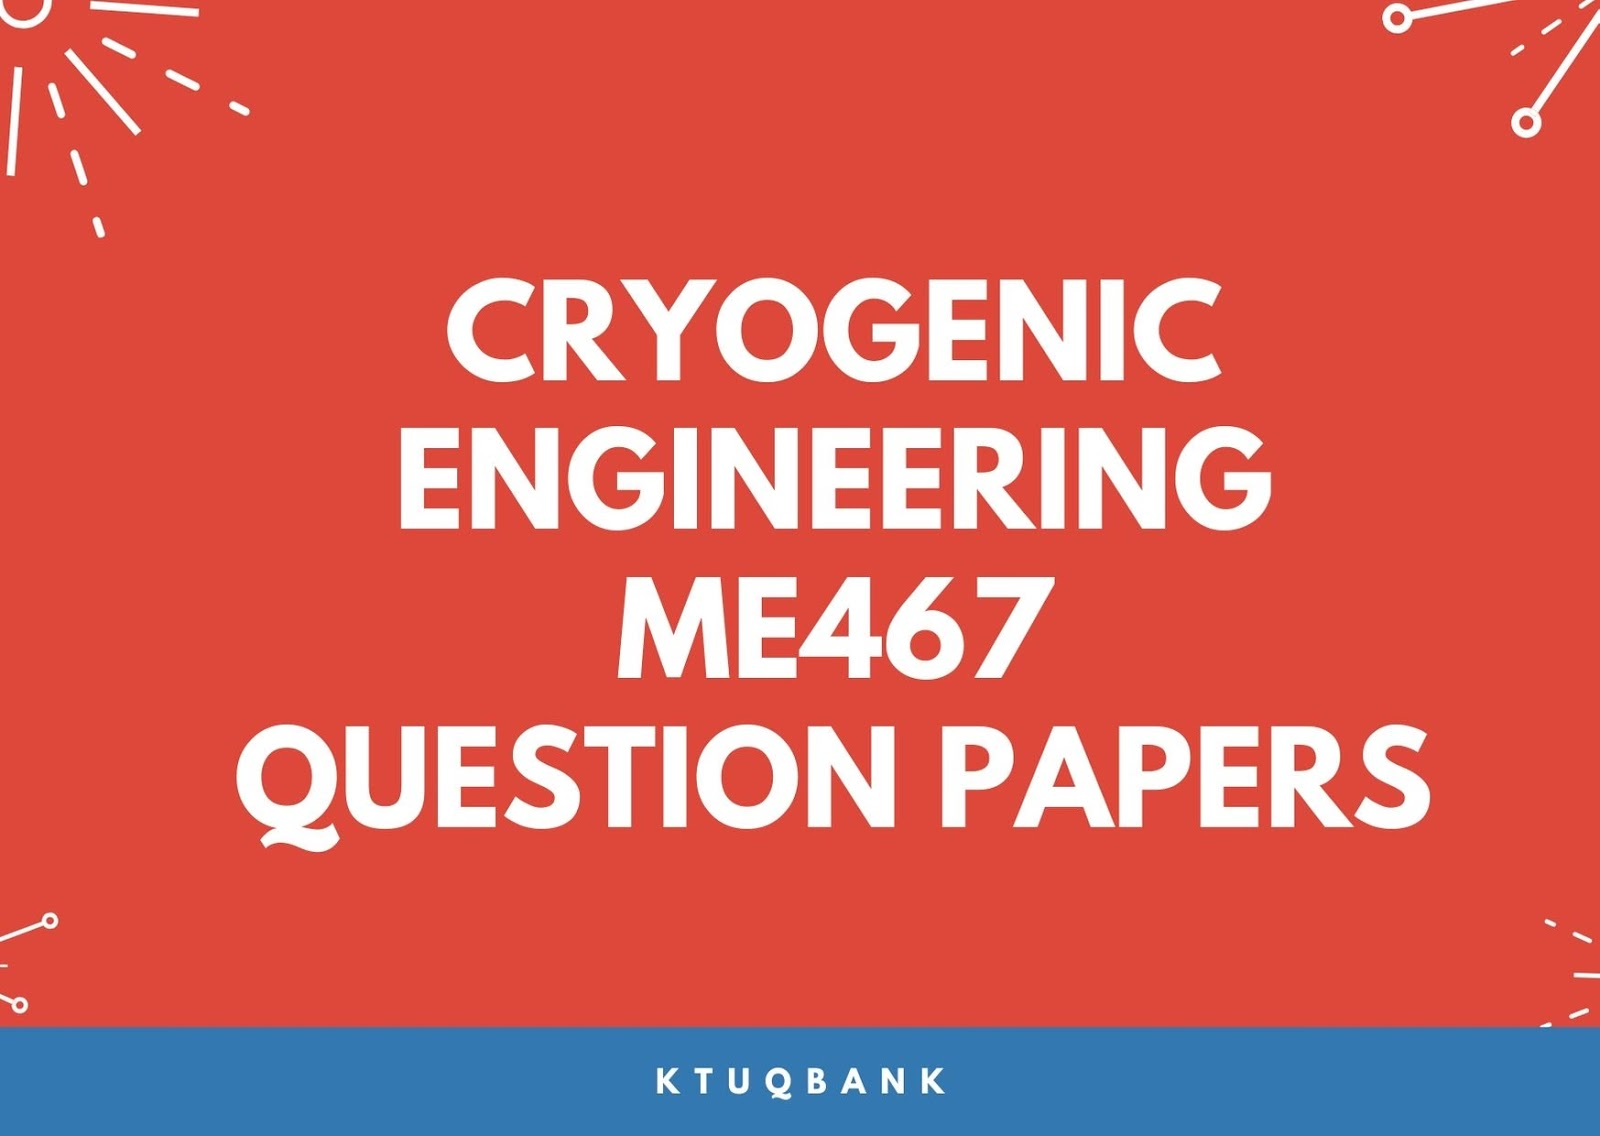 Cryogenic Engineering | ME467 | Question Papers (2015 batch)